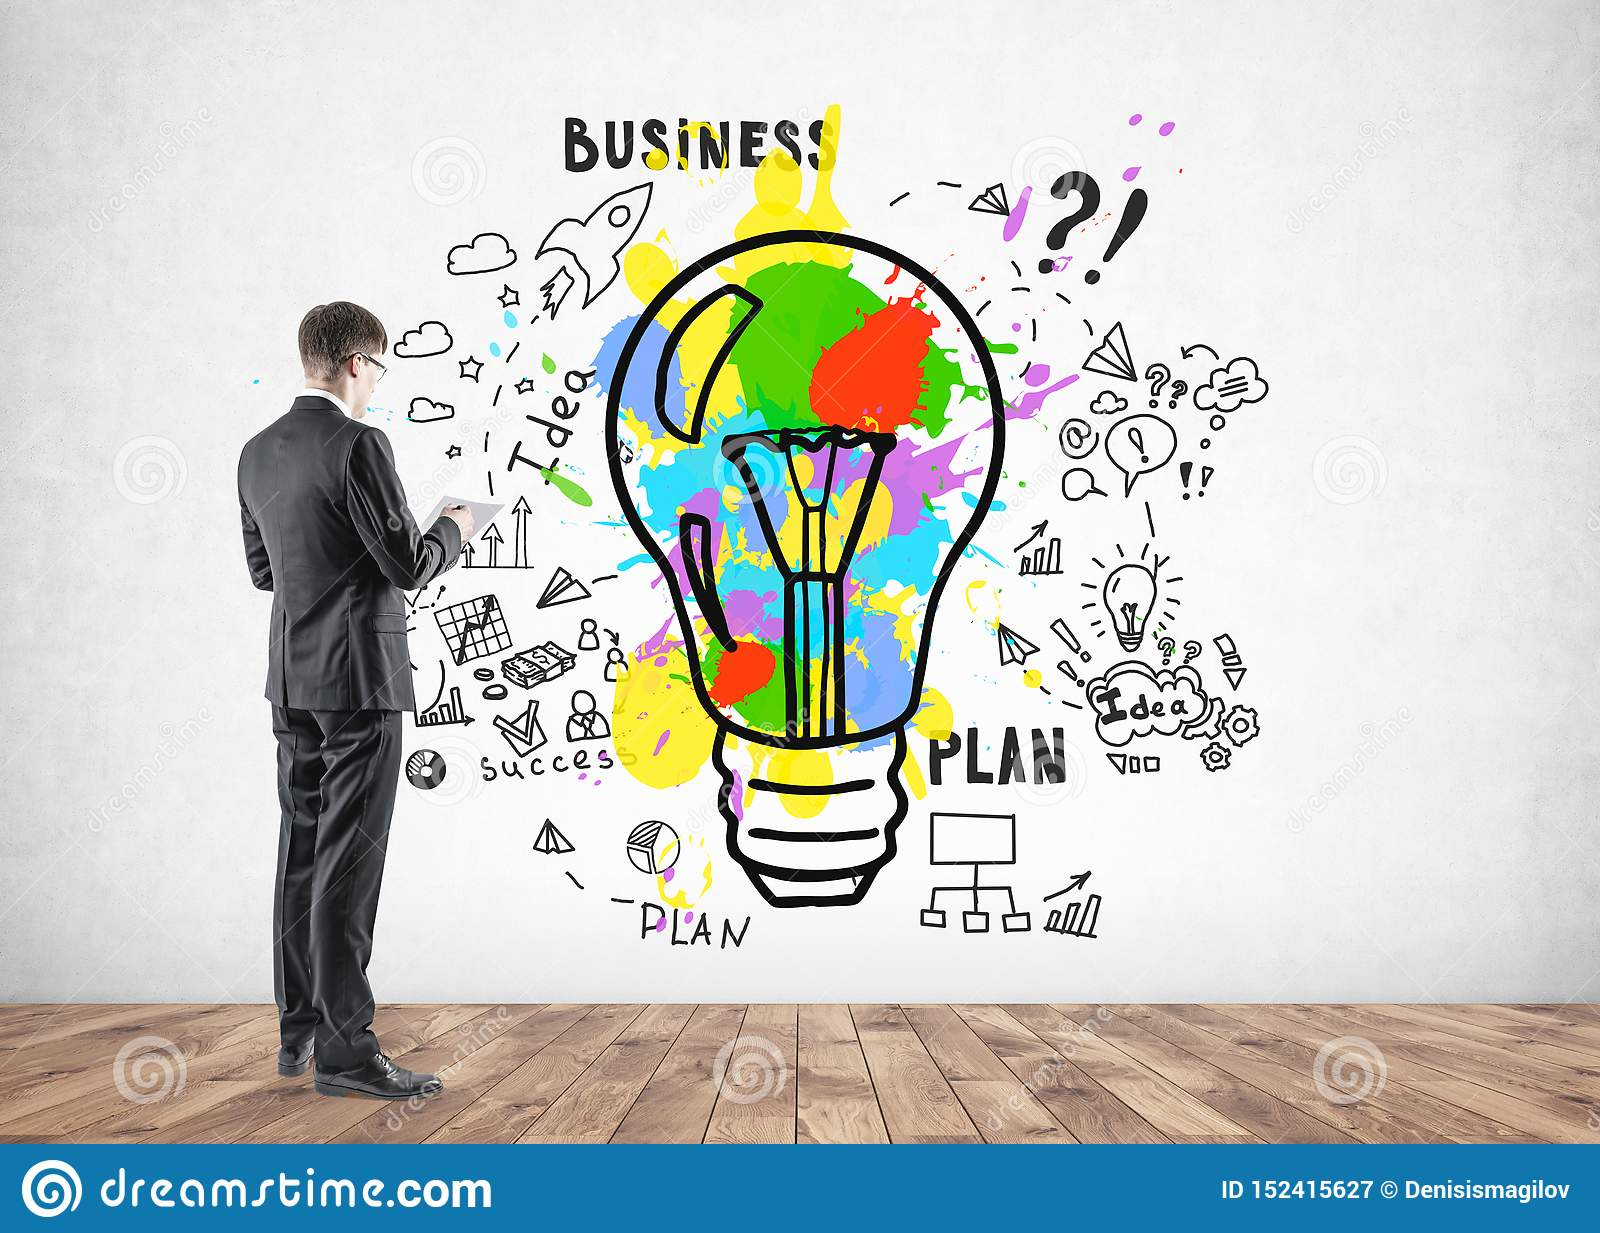 Young Man In Suit Looking At Business Idea Sketch Stock Image Image Of Idea Concept 152415627